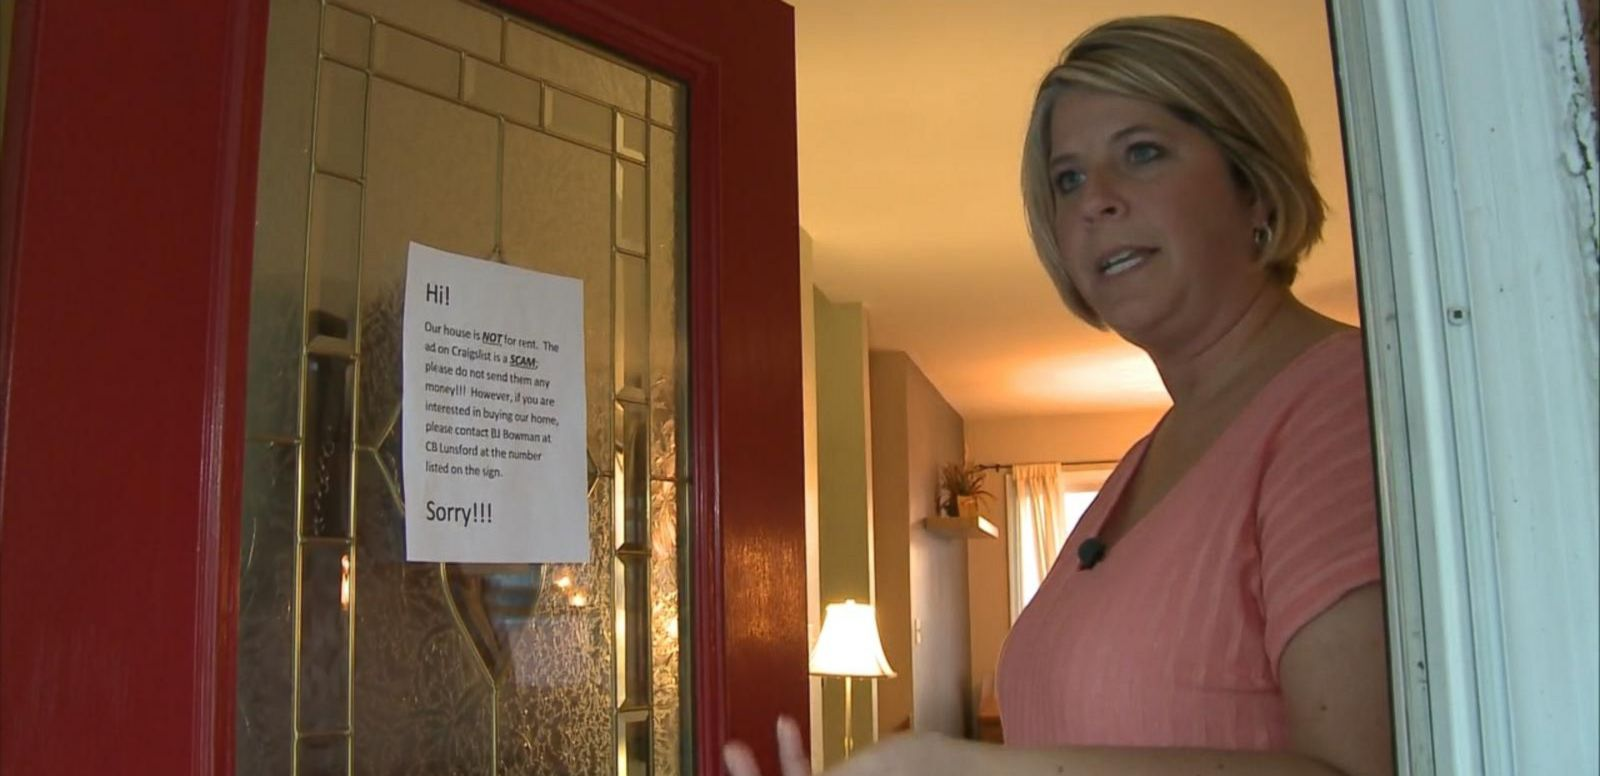 VIDEO: Scammers Renting Occupied Houses on Craigslist